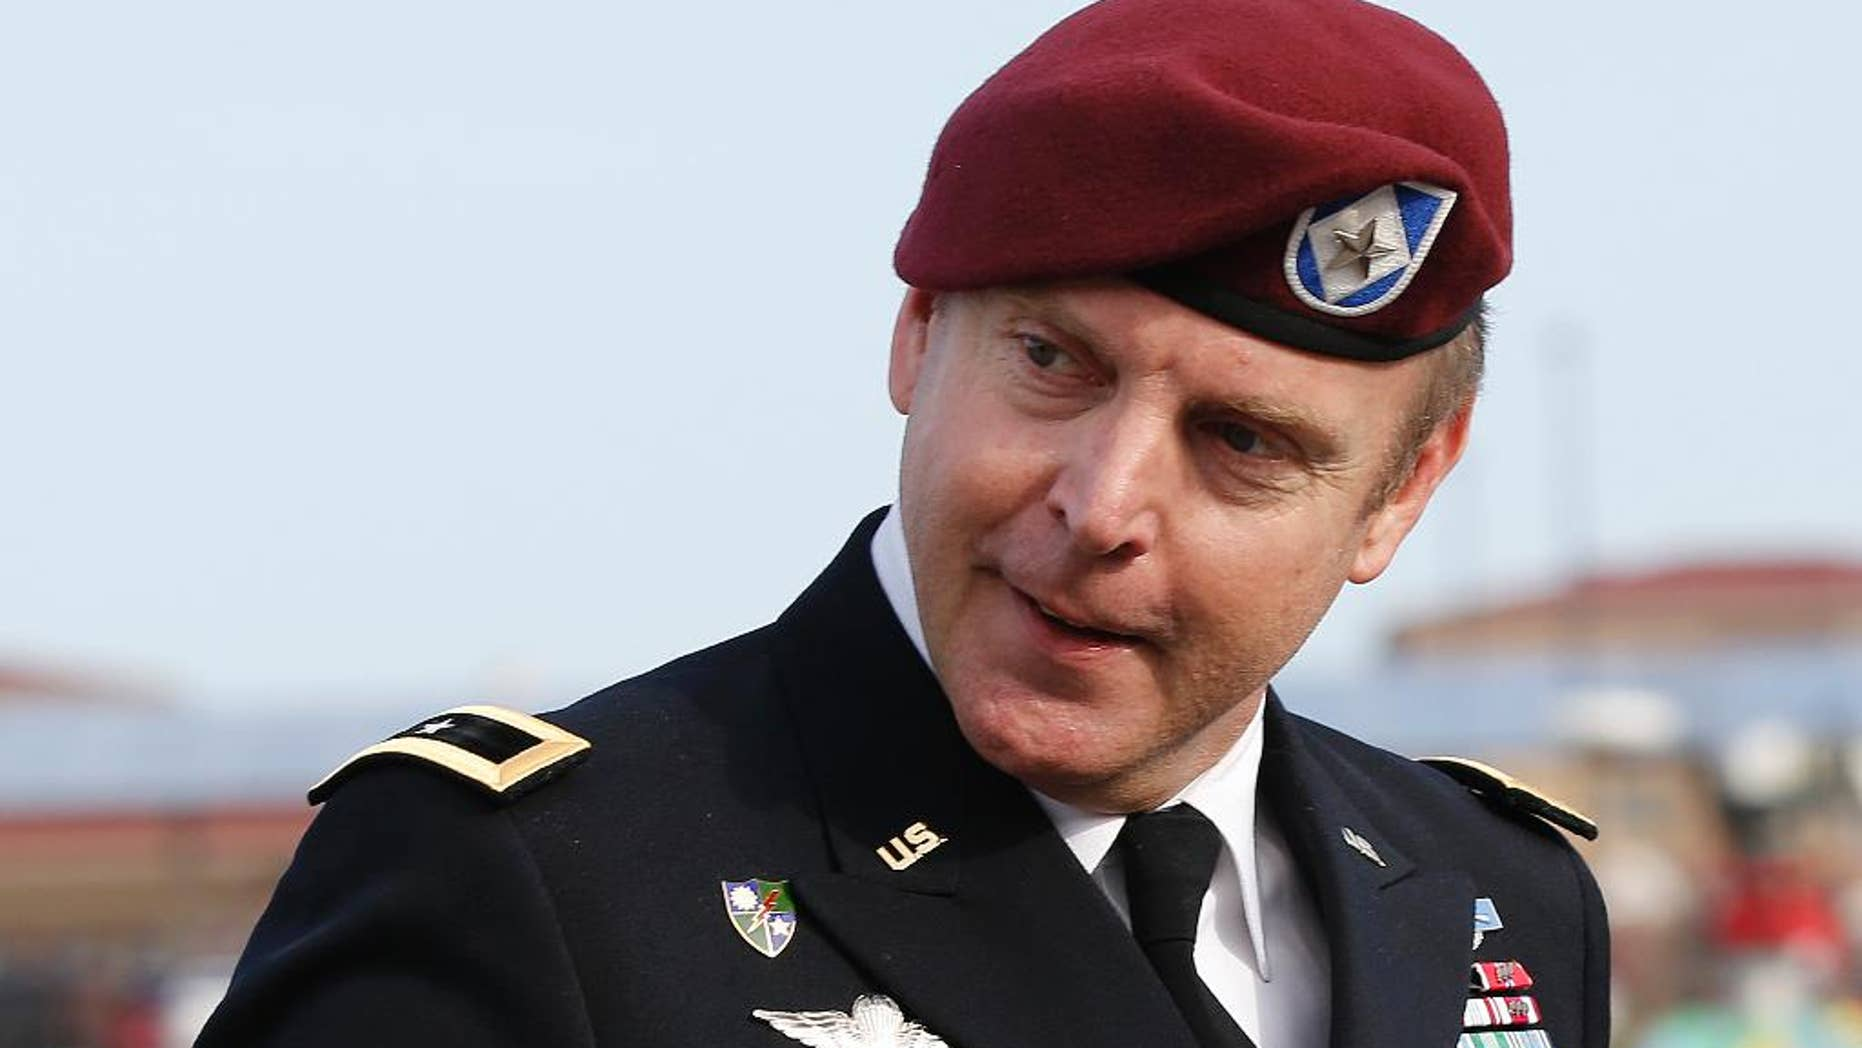 Brig. Gen. Jeffrey Sinclair, who admitted to inappropriate relationships with three subordinates, arrives at the courthouse for sentencing at Fort Bragg, N.C., Thursday, March 20, 2014.  Sinclair was reprimanded and docked $20,000 in pay Thursday, avoiding jail time in one of the U.S. military's most closely watched courts-martial.(AP Photo/Ellen Ozier)